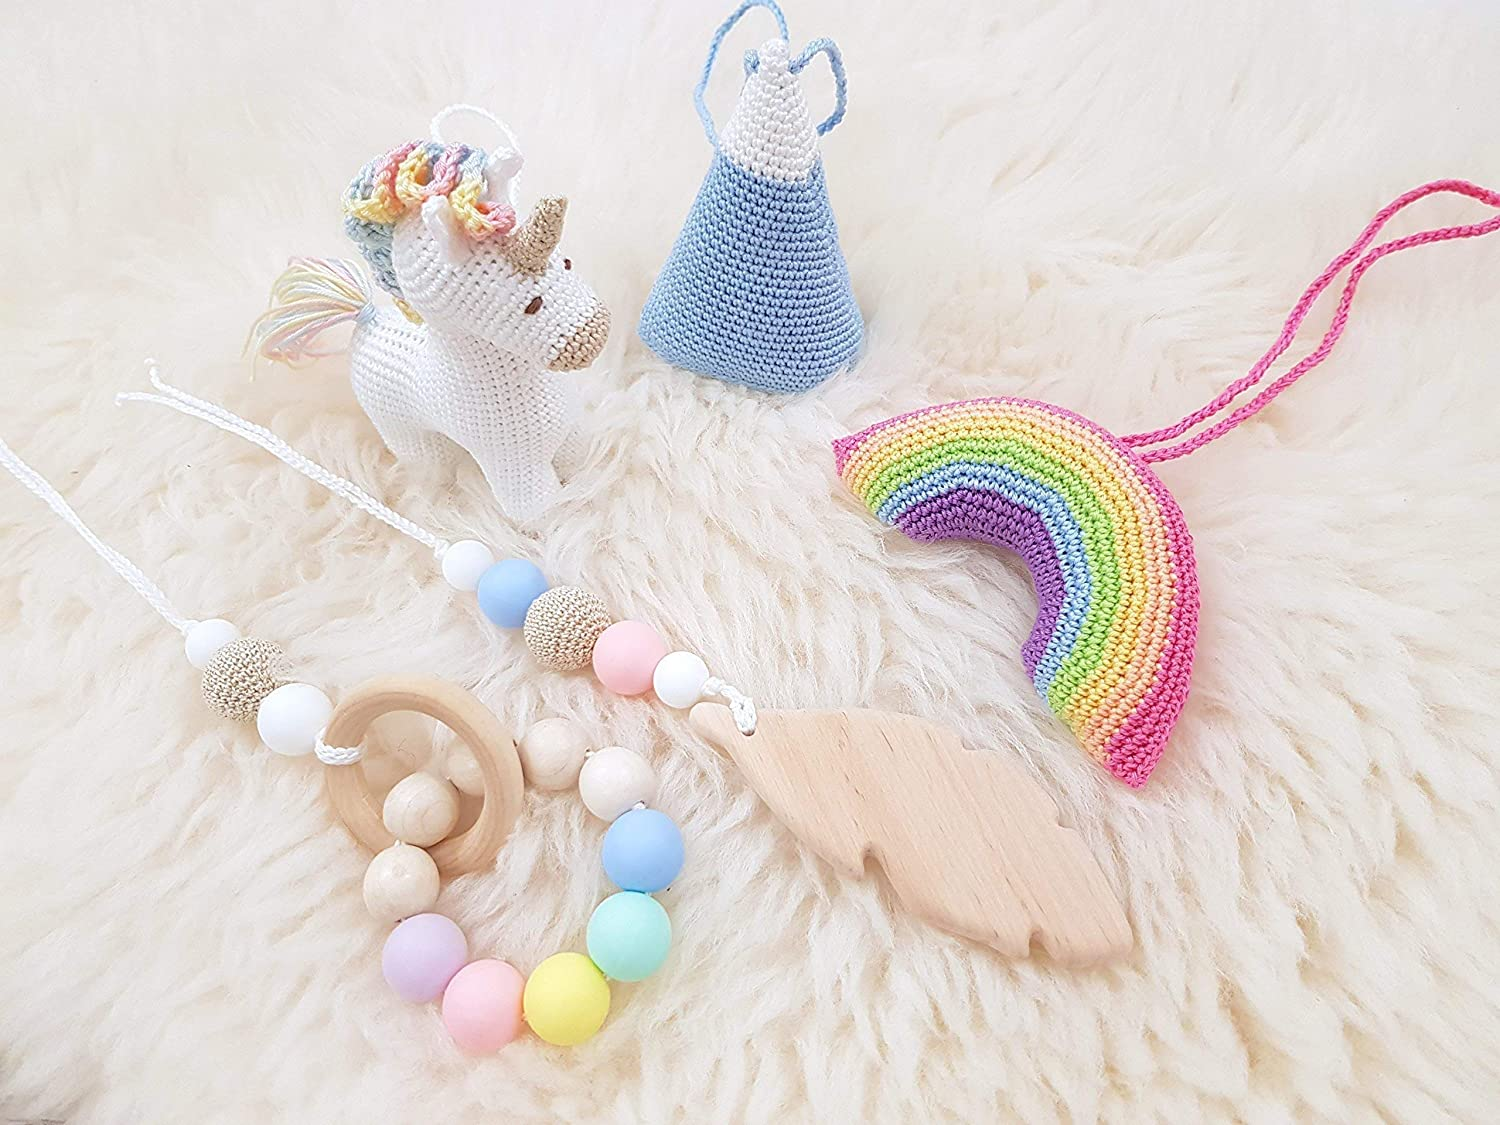 Baby gym mobiles set of 5: Rainbow, Unicorn, Mountain, Feather, Beaded ring. Infant activity center accessories, crochet rattles. Baby shower gift. Handmade in Eastern Europe.